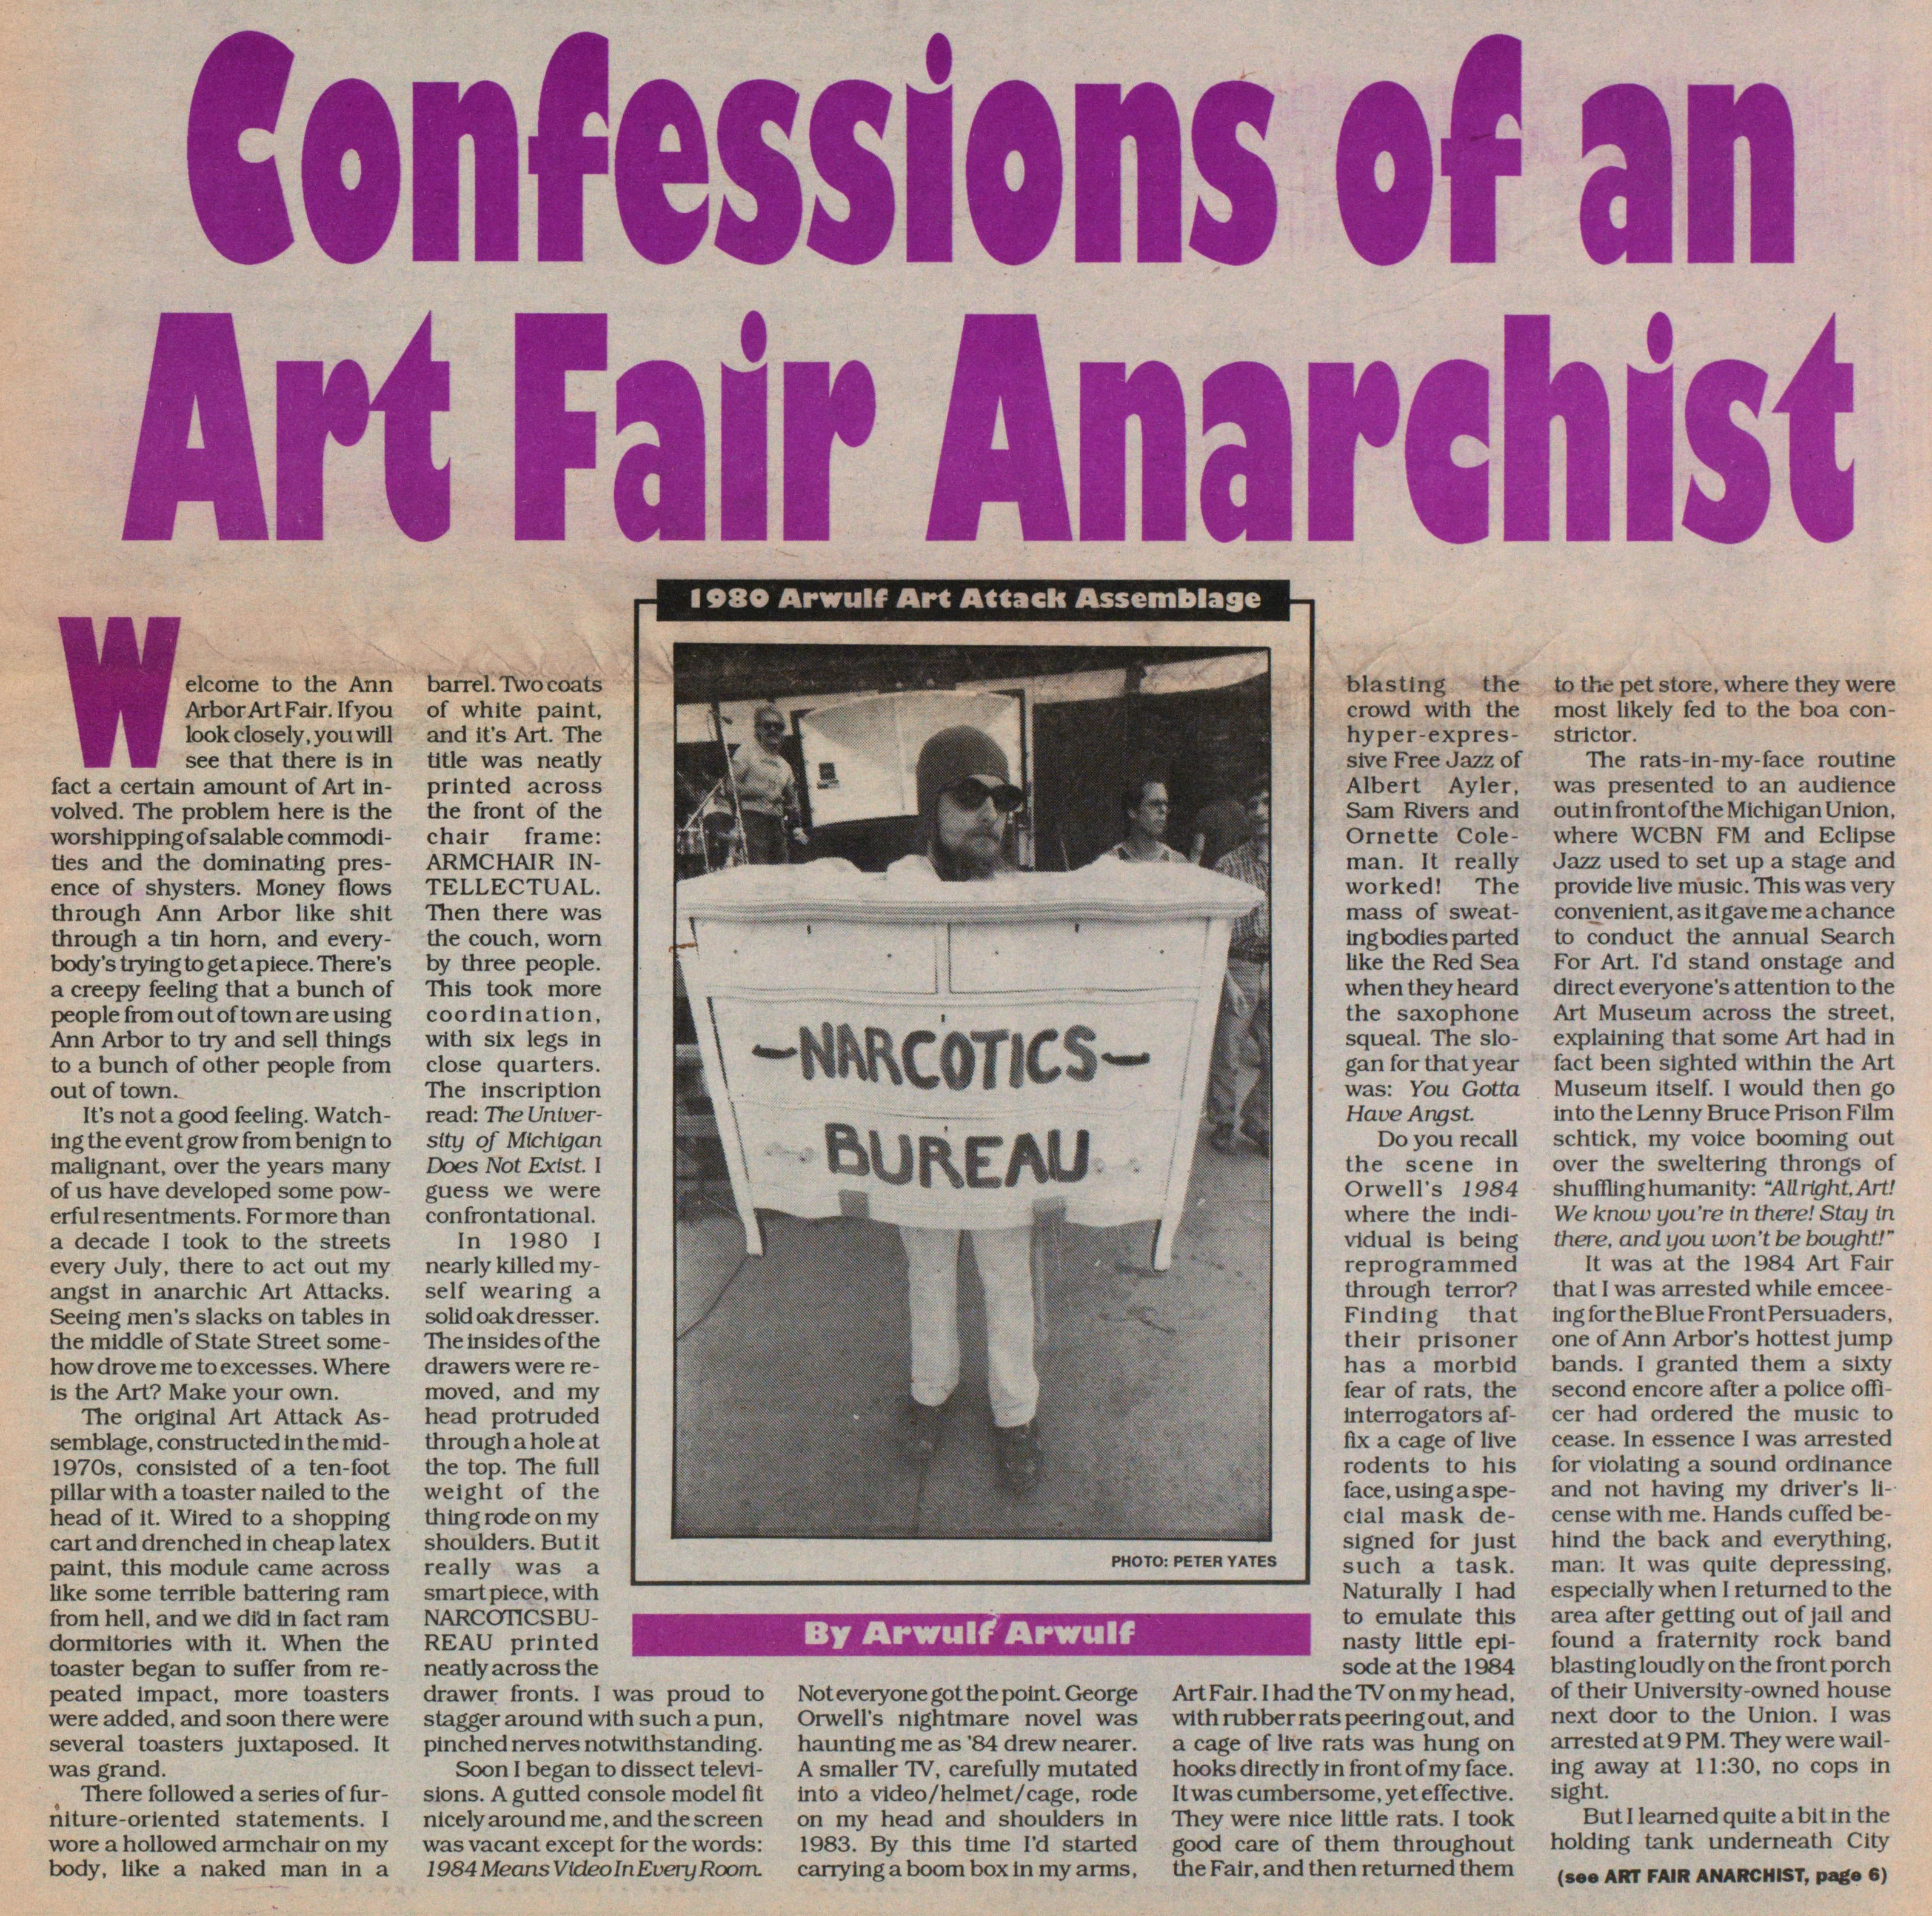 Confessions Of An Art Fair Anarchist image